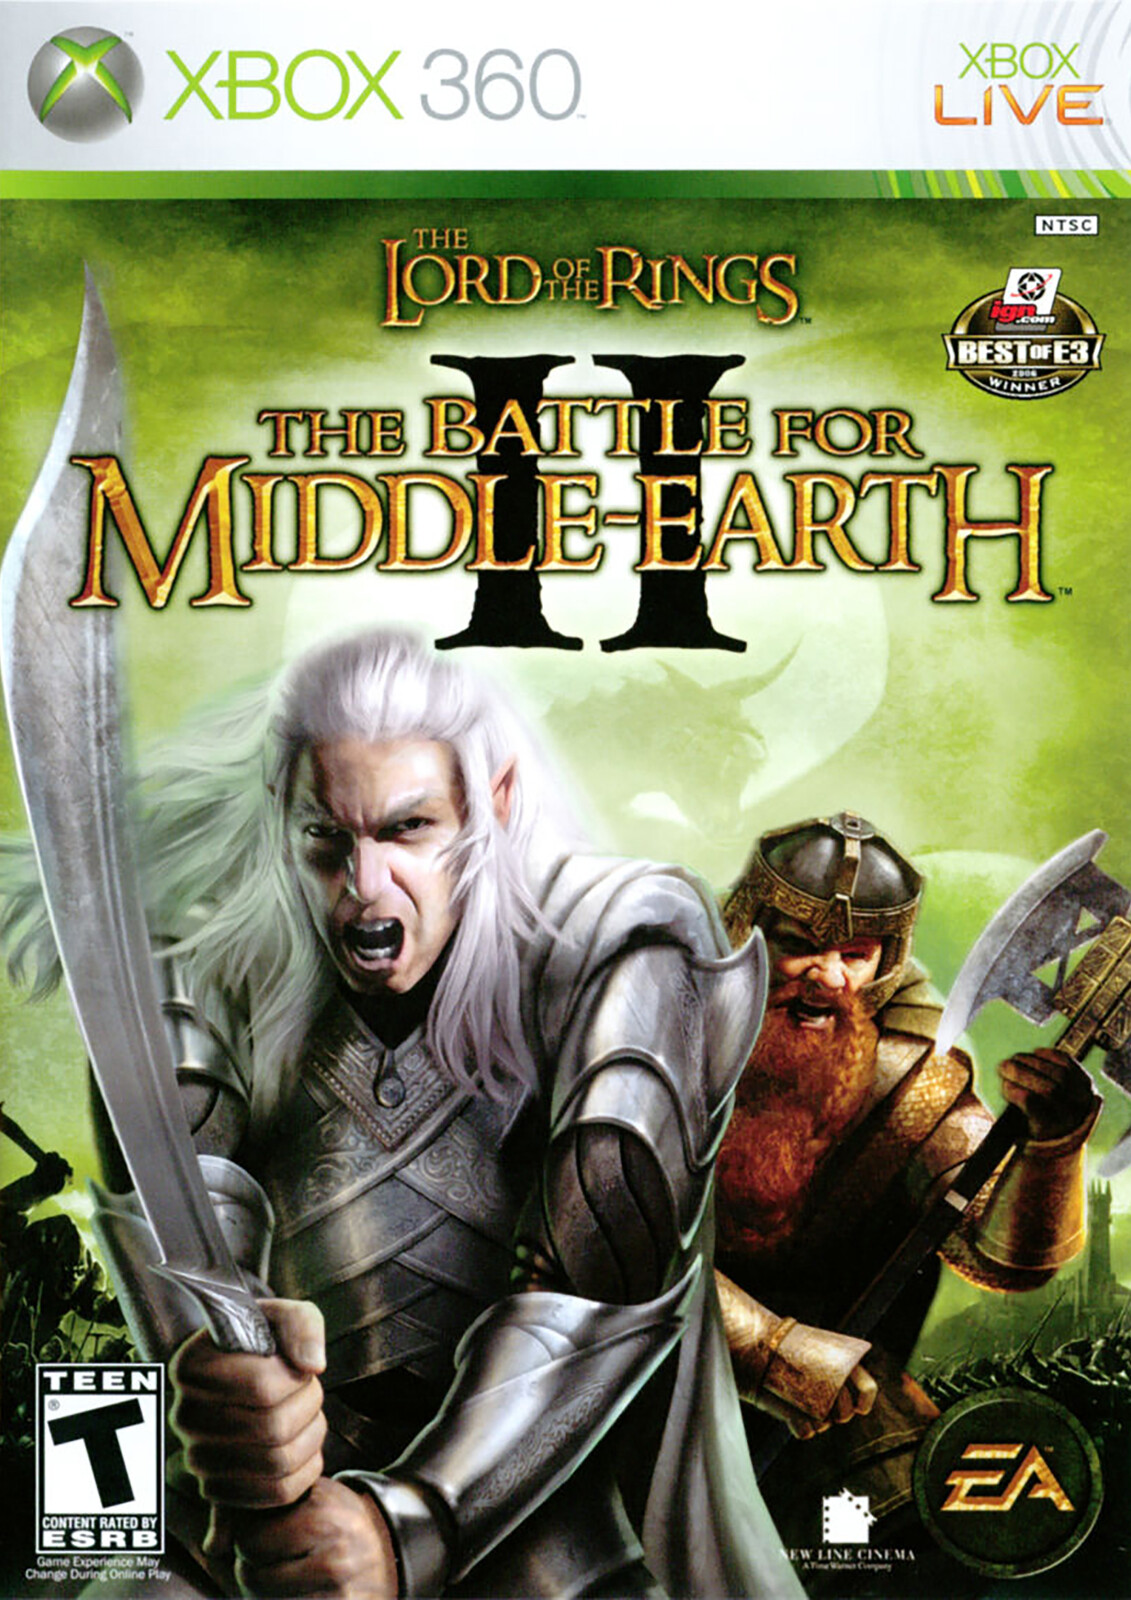 LOTR: The Battle For Middle Earth II